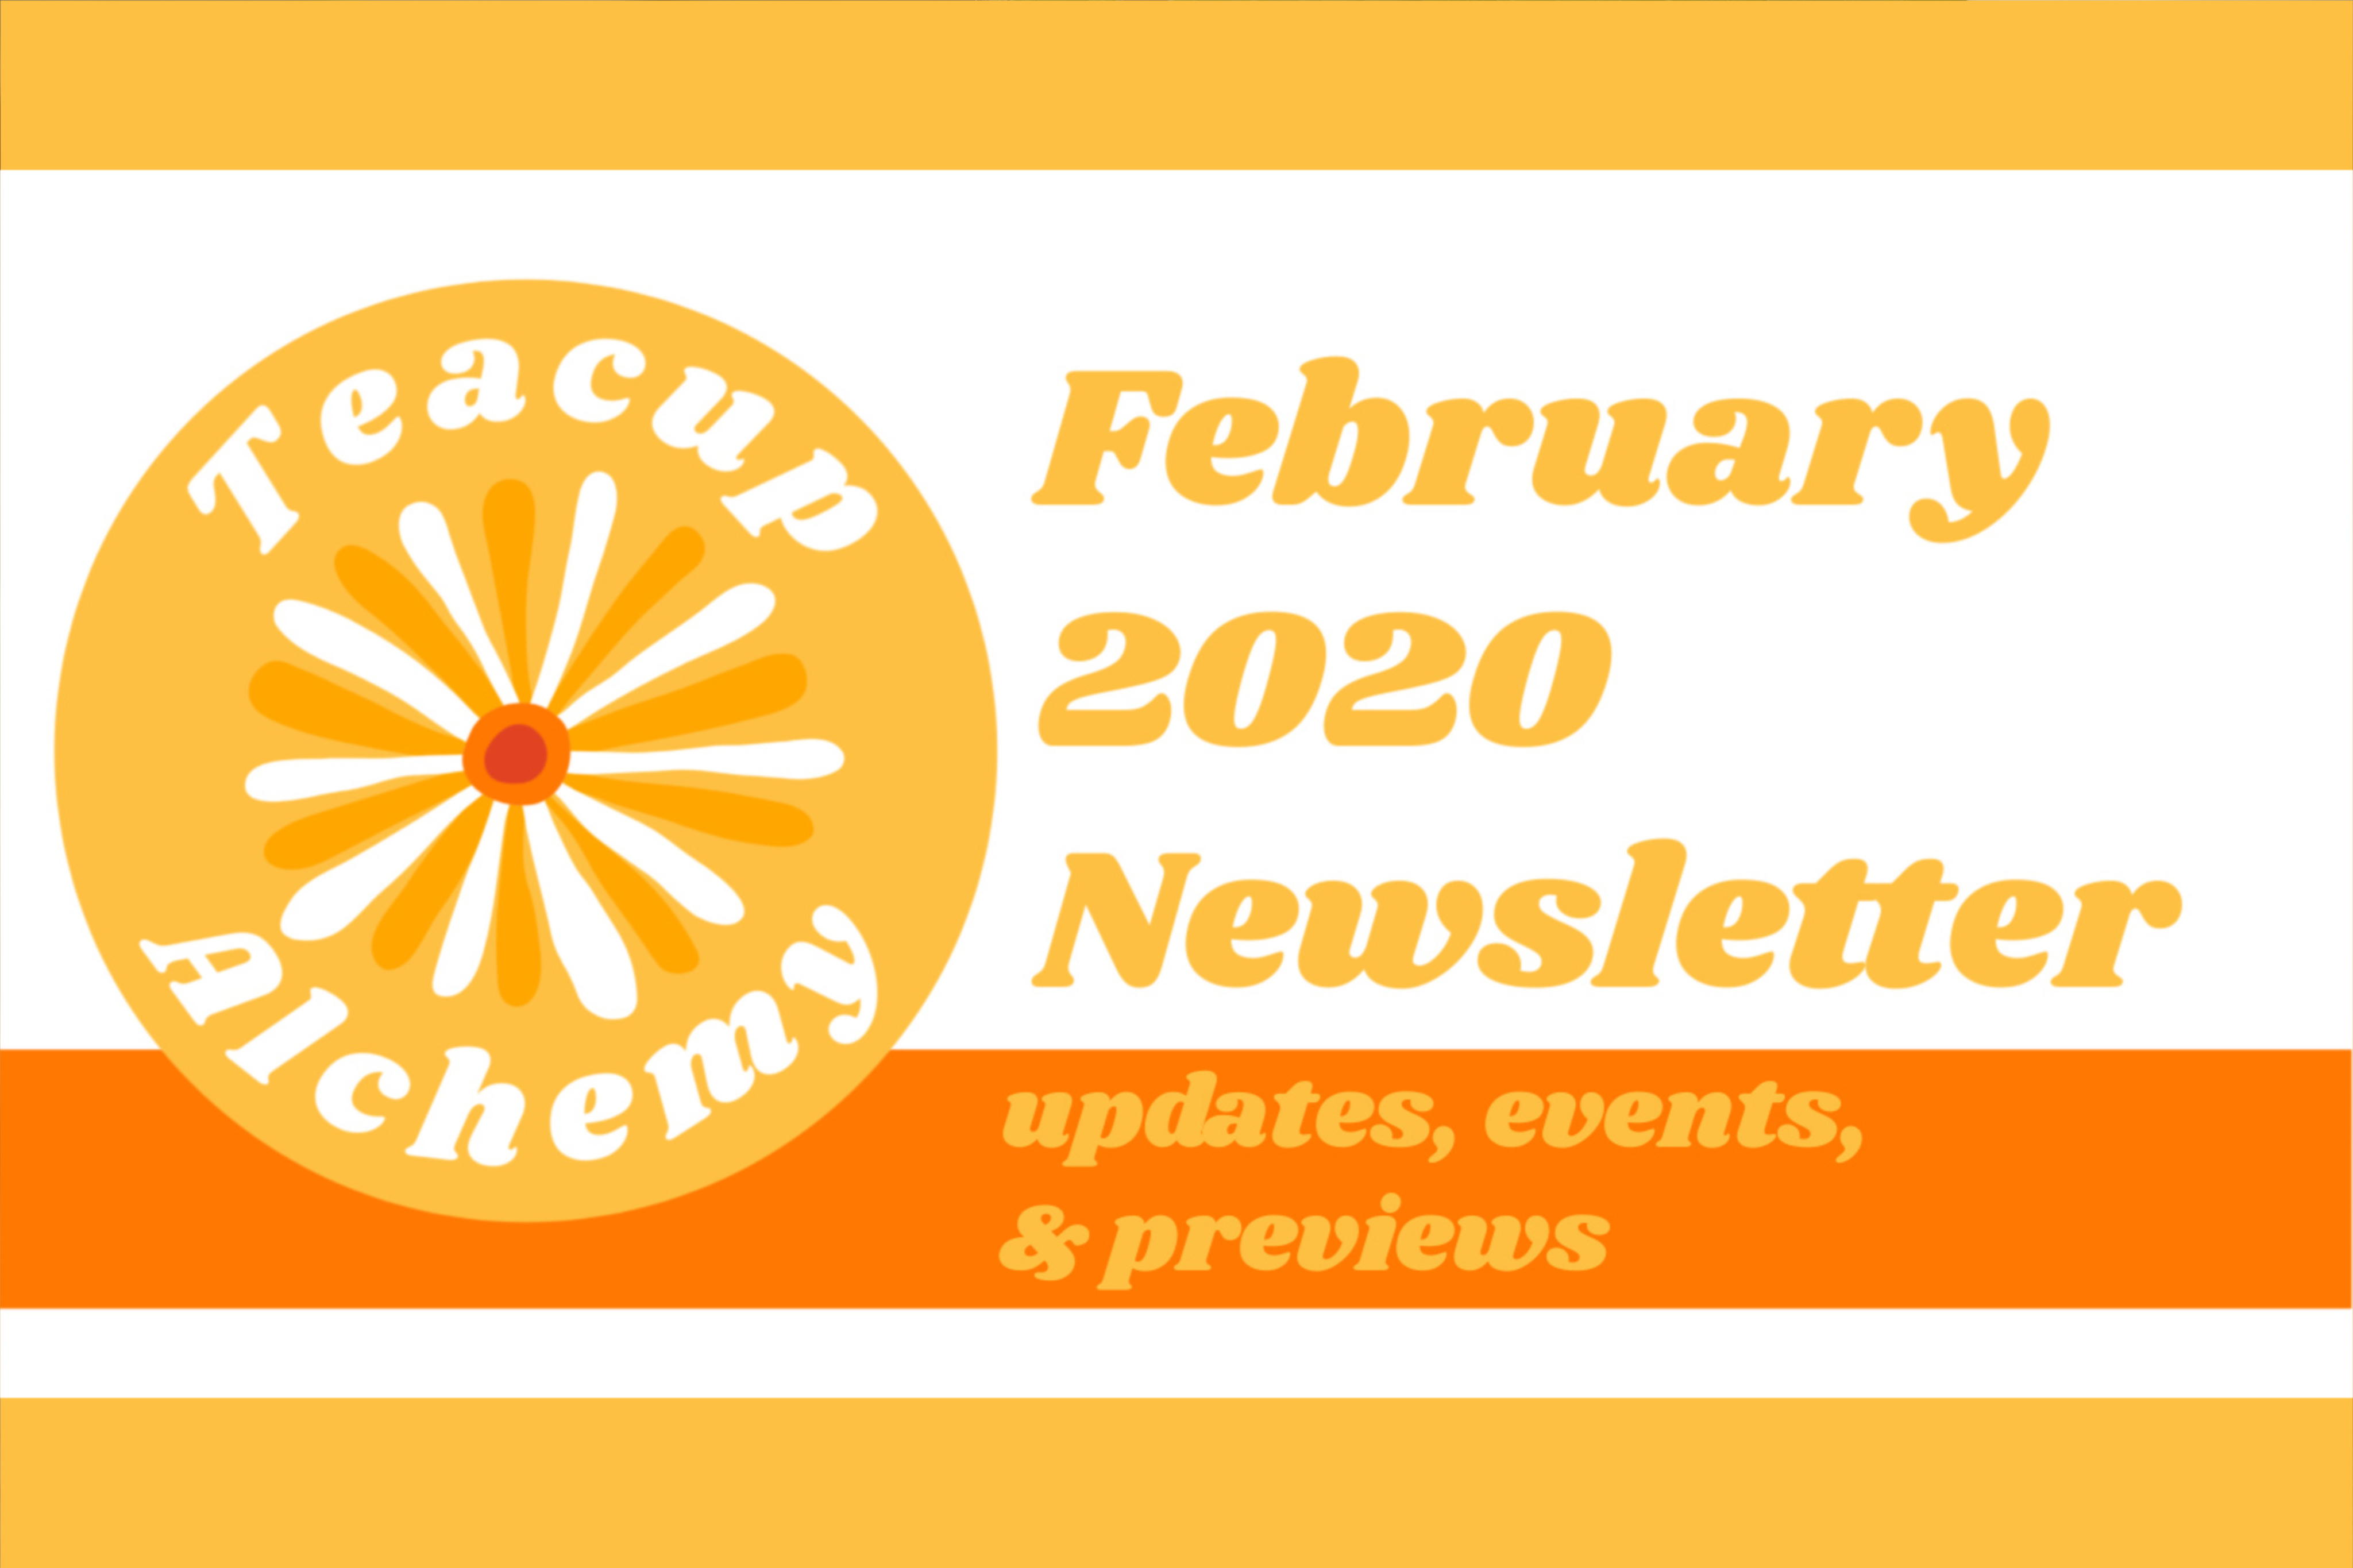 February 2020 News and Adventures